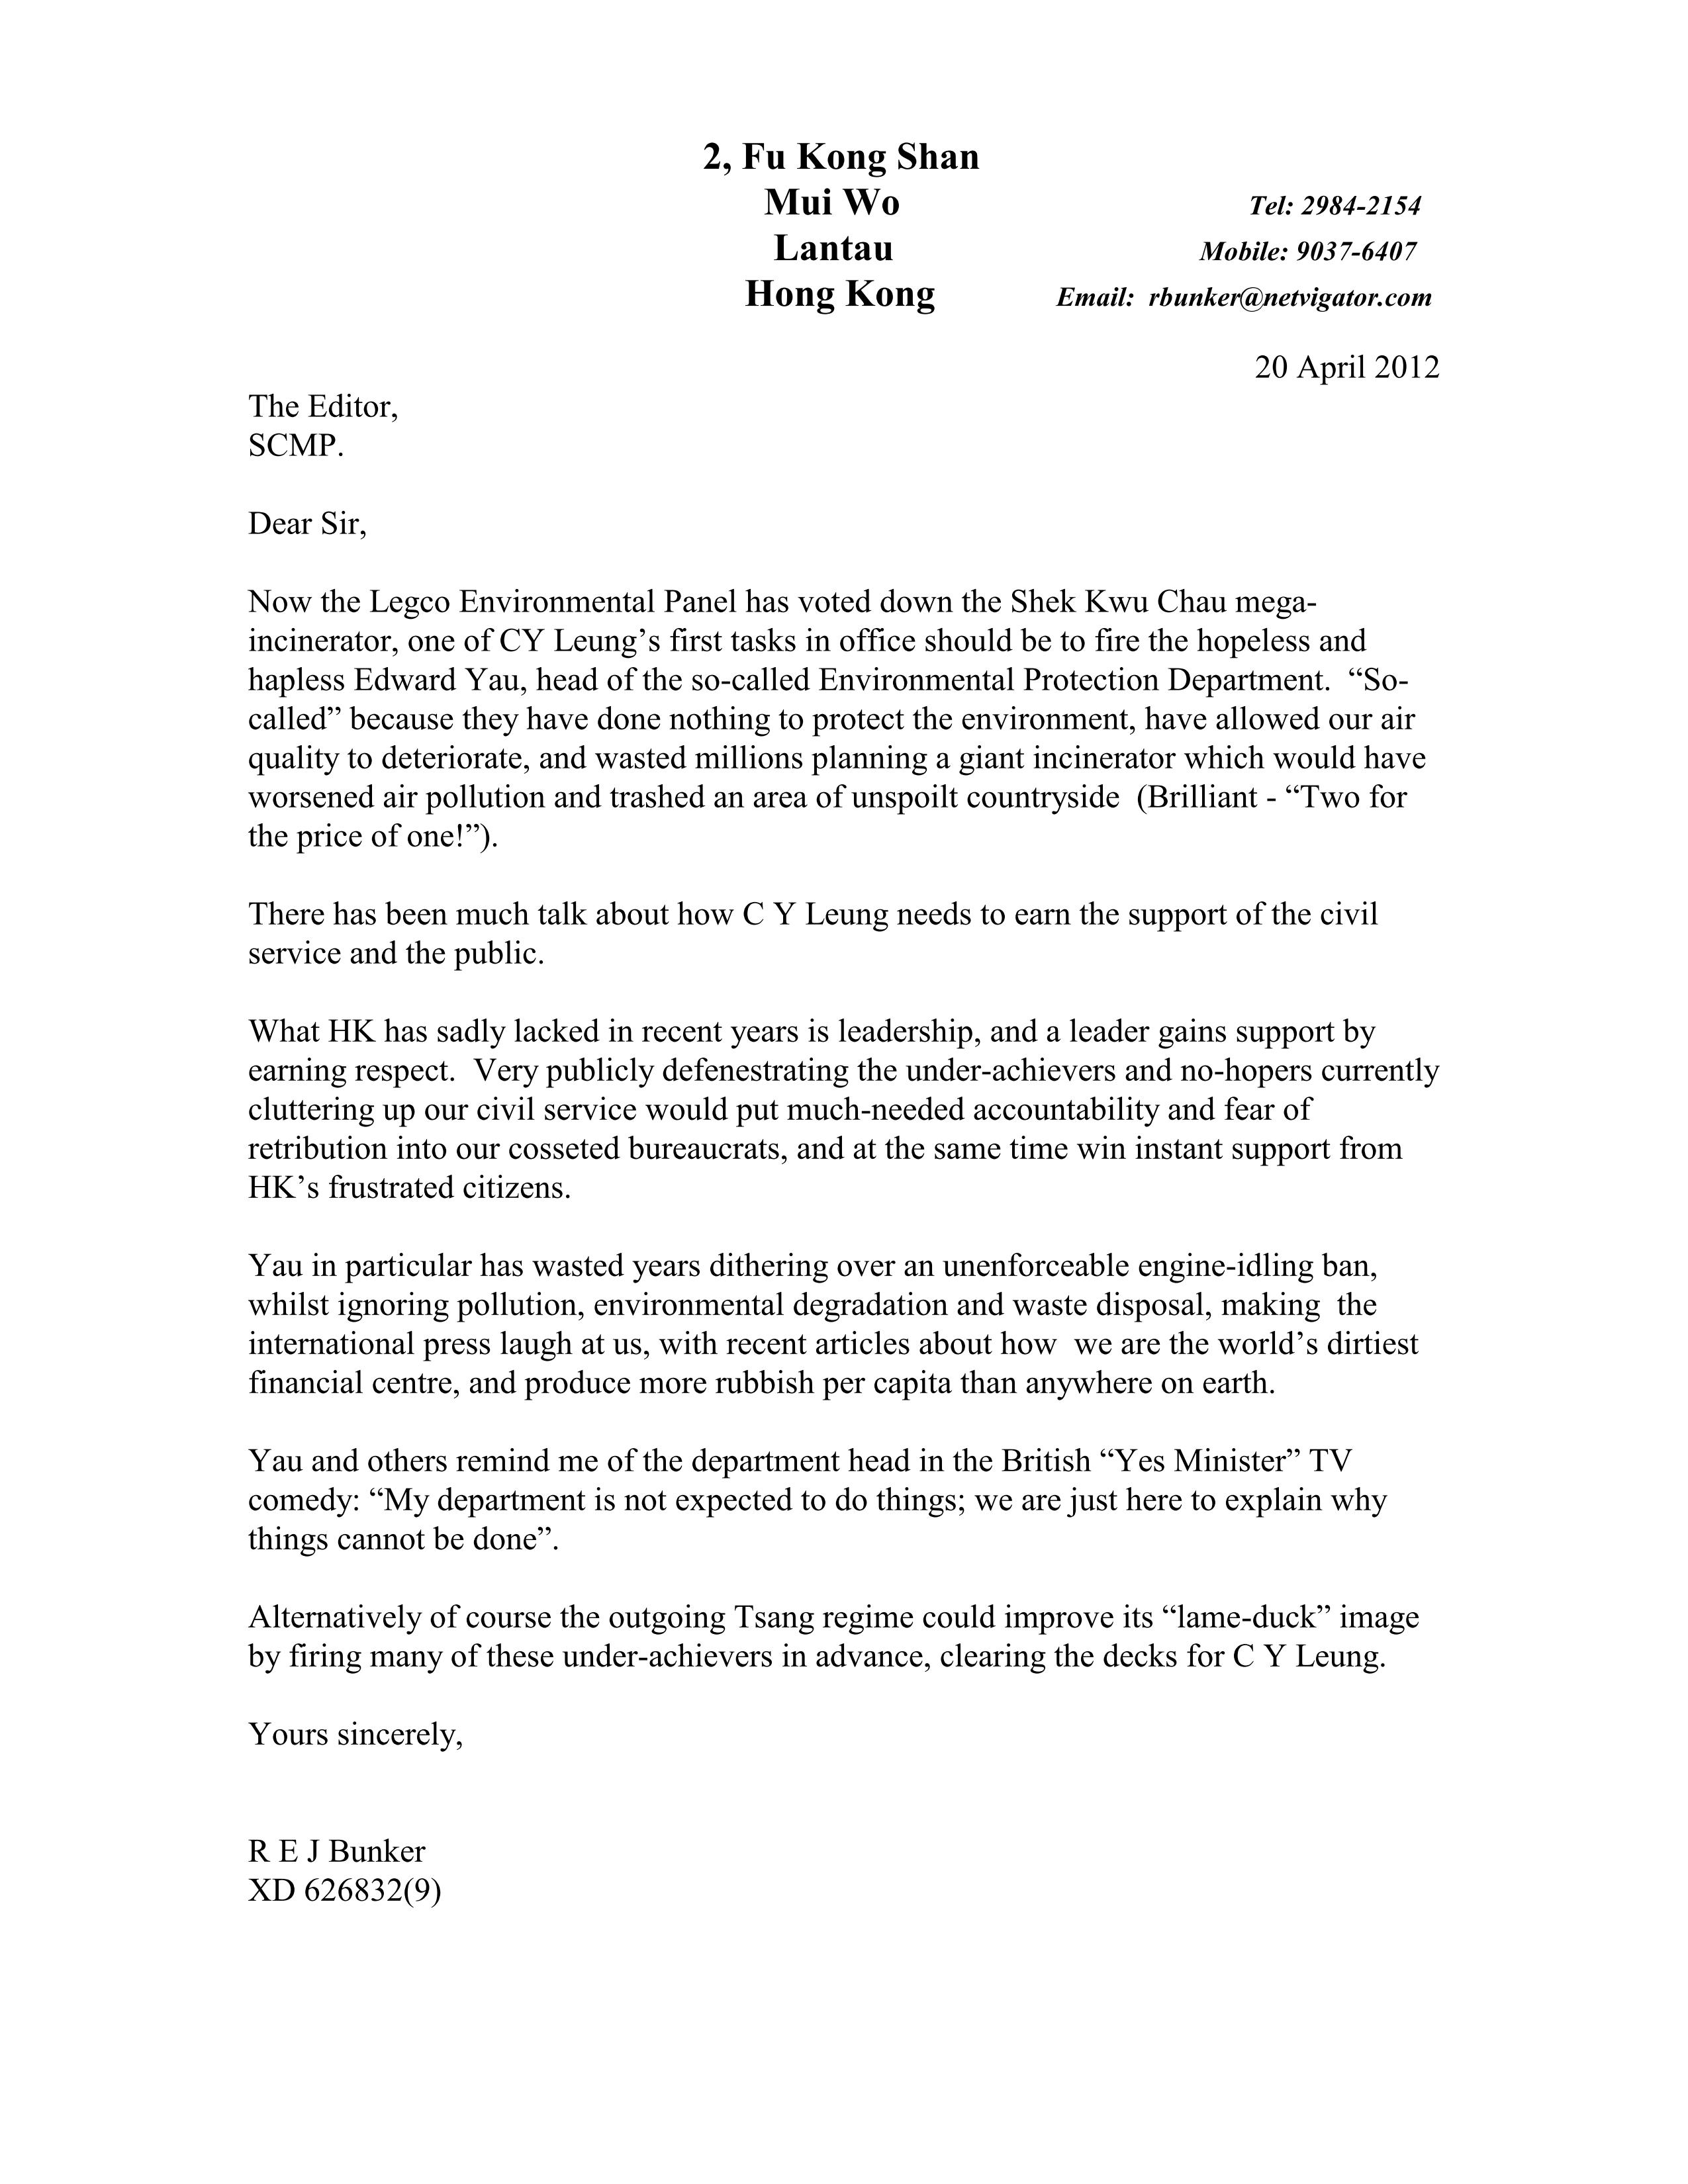 letter to scmp clear the air news blog posted